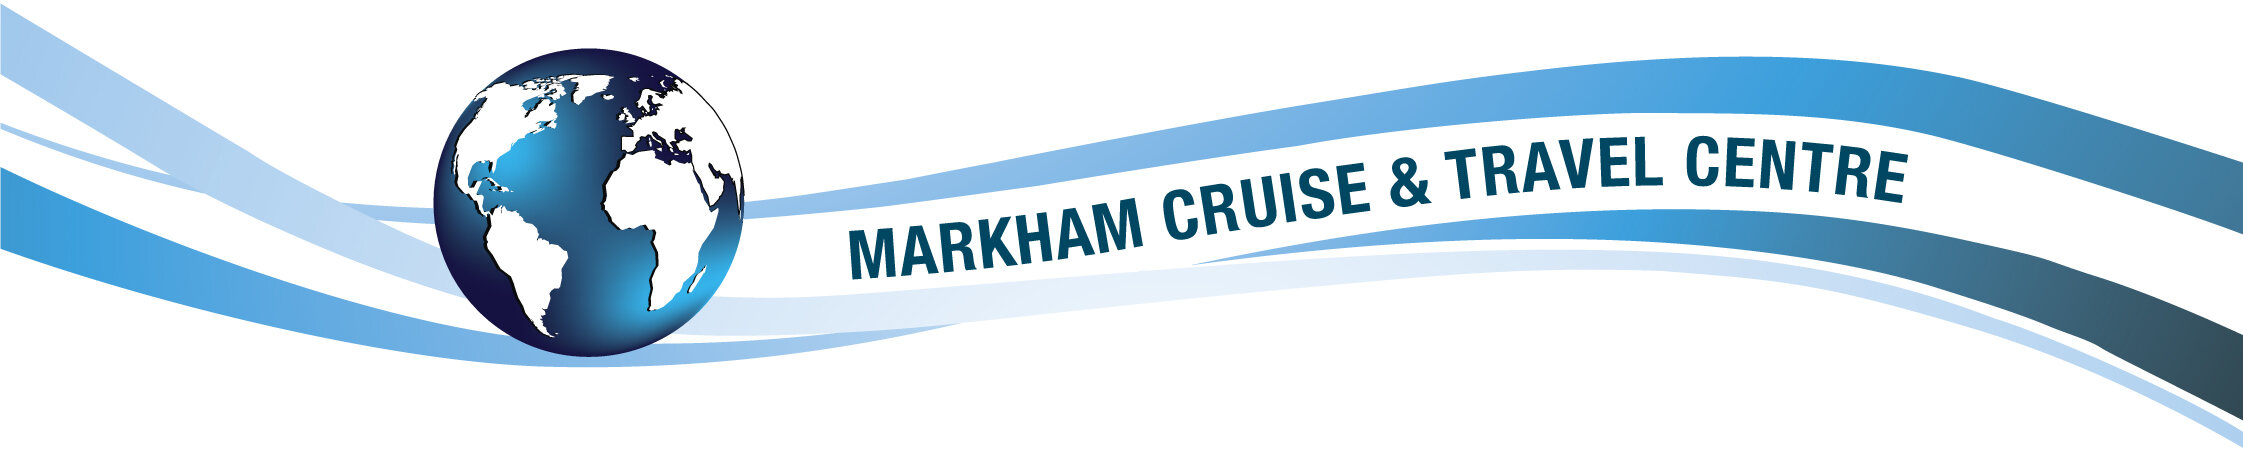 Markham Cruise & Travel Centre